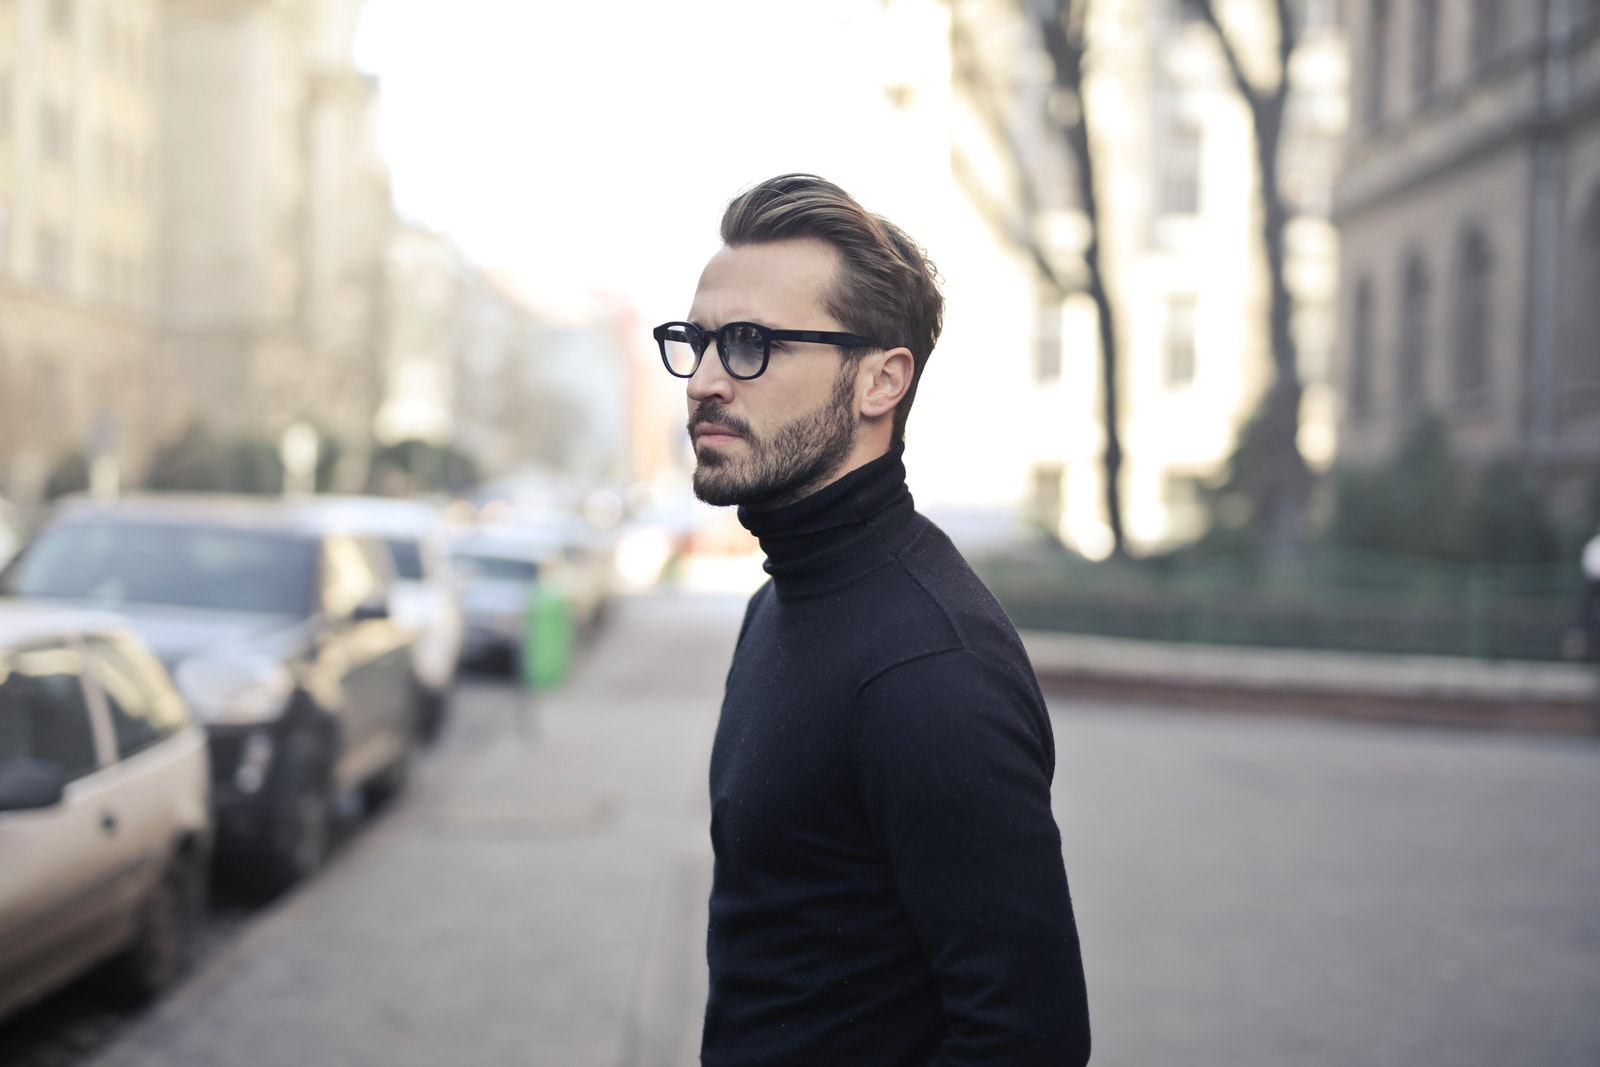 Bearded Man With Eyeglasses   How To Properly Fade Your Beard Neckline